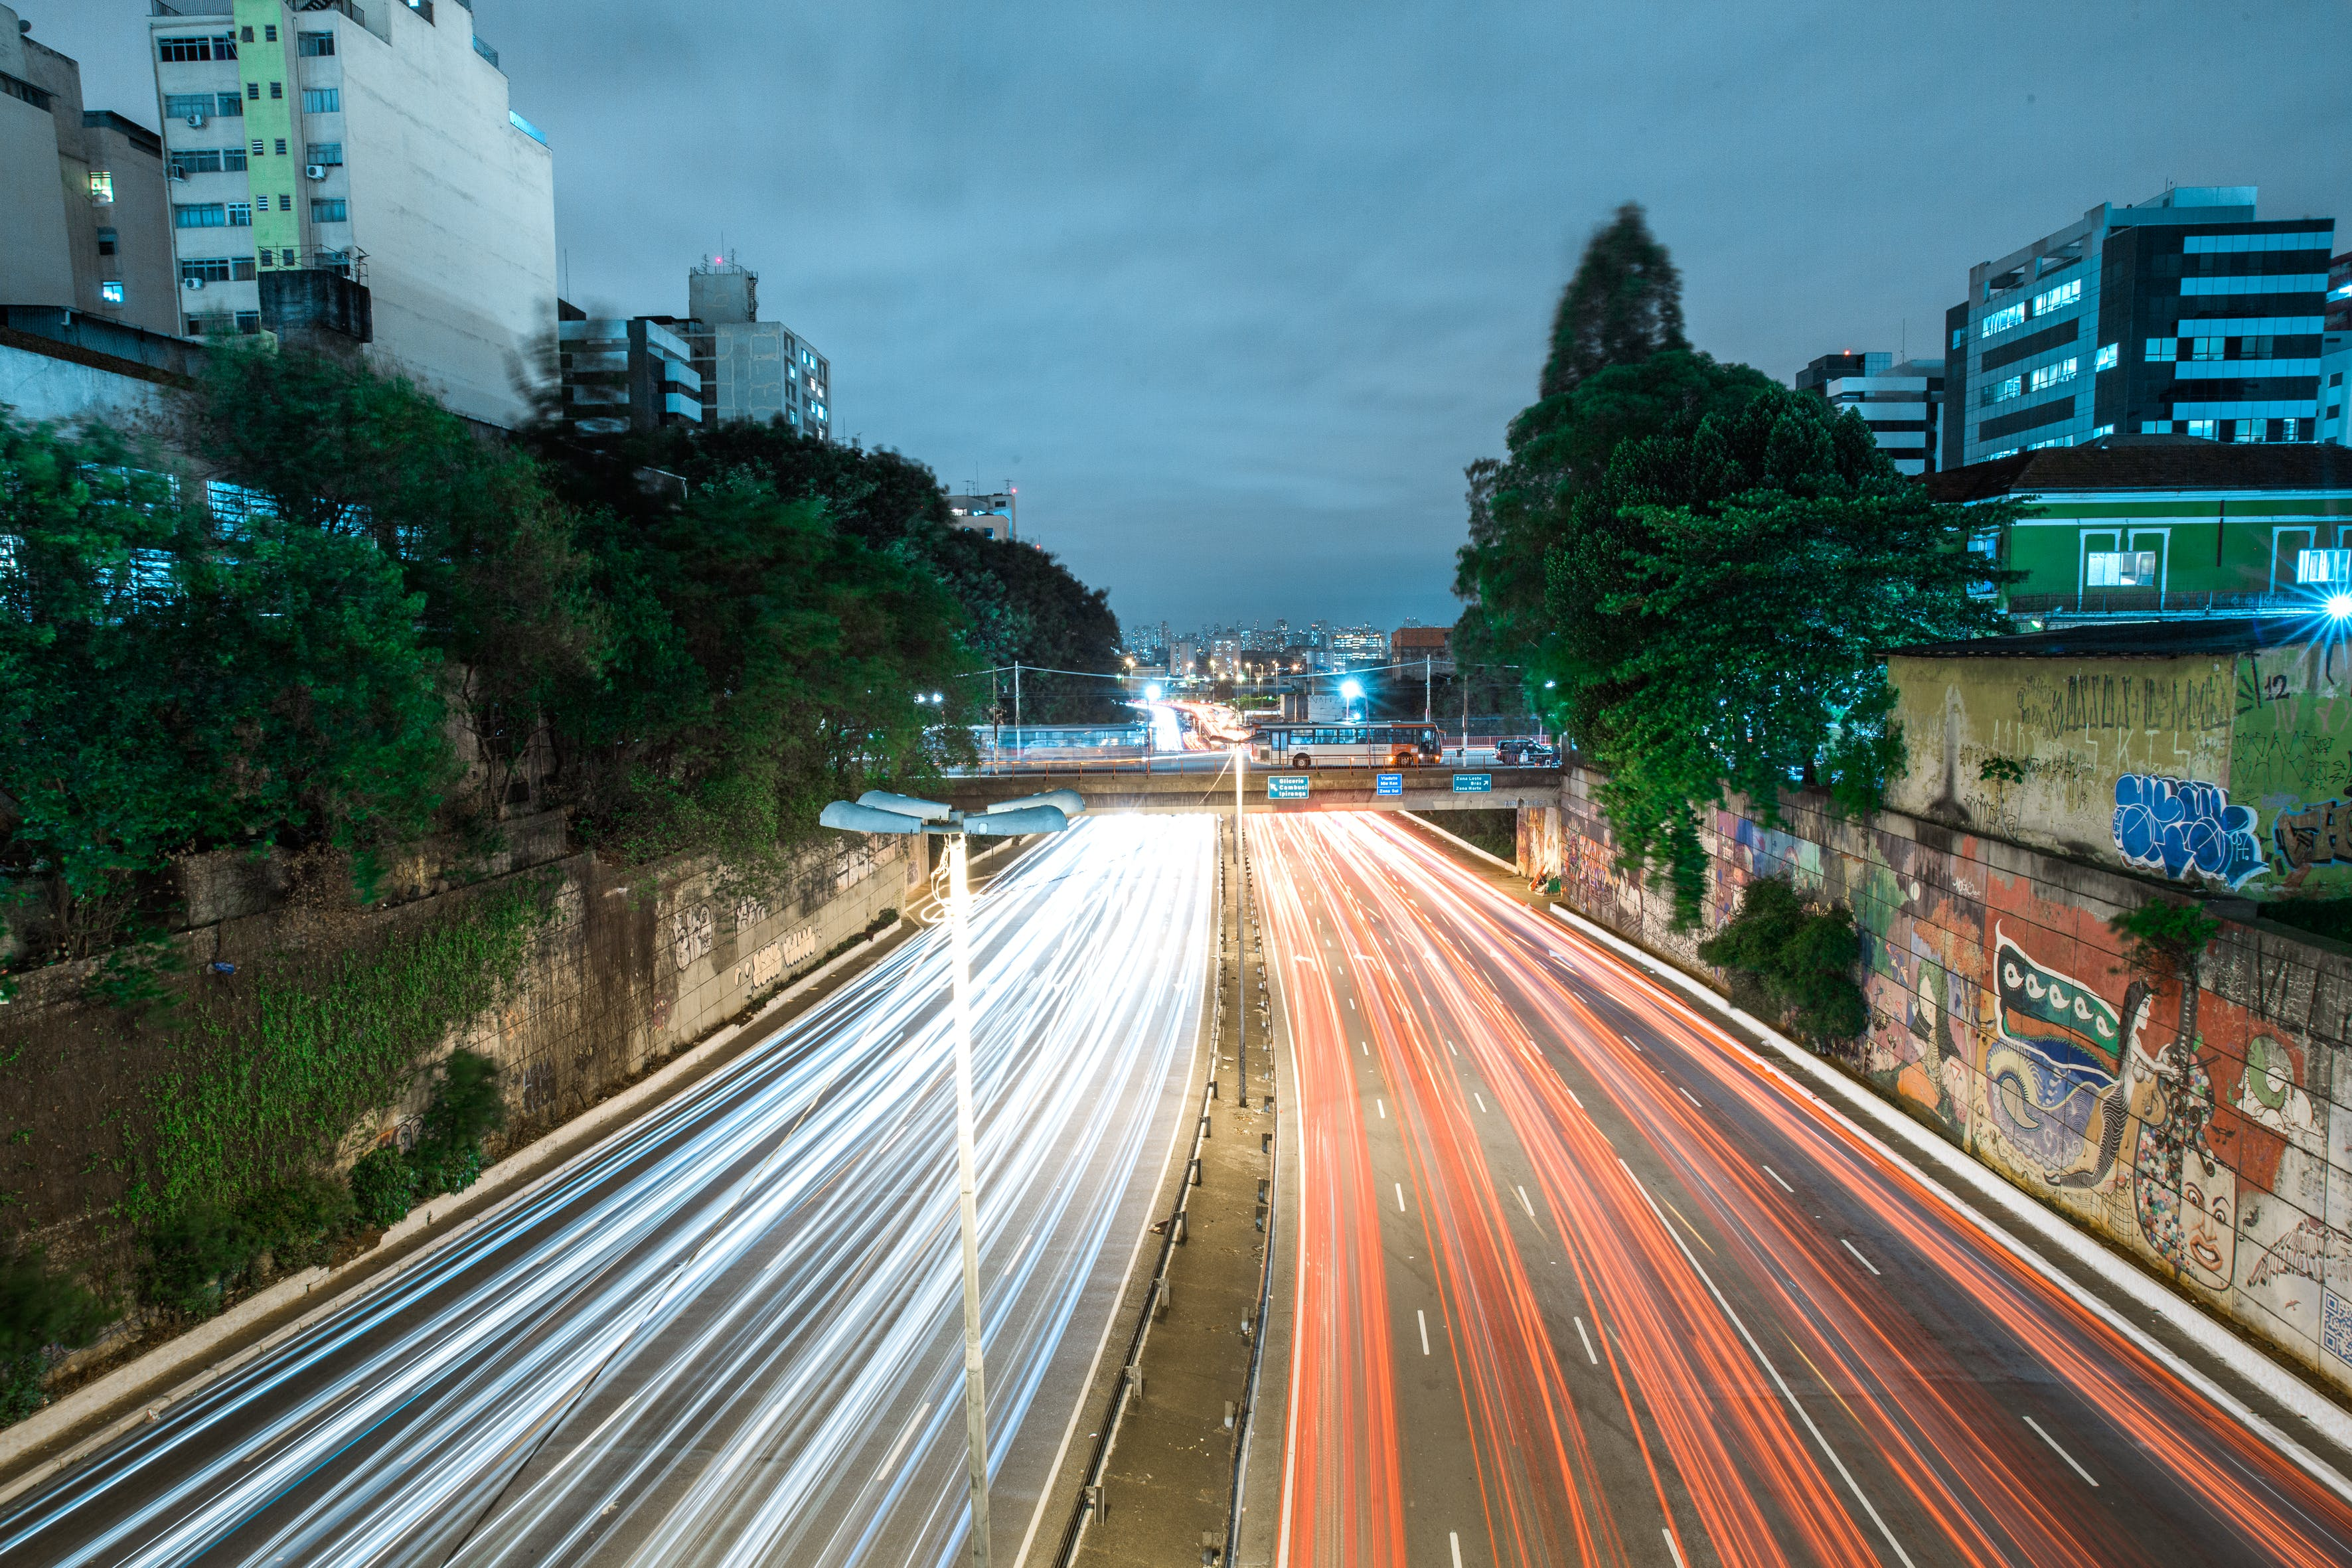 Time Lapse Photography of Road With Car Lights